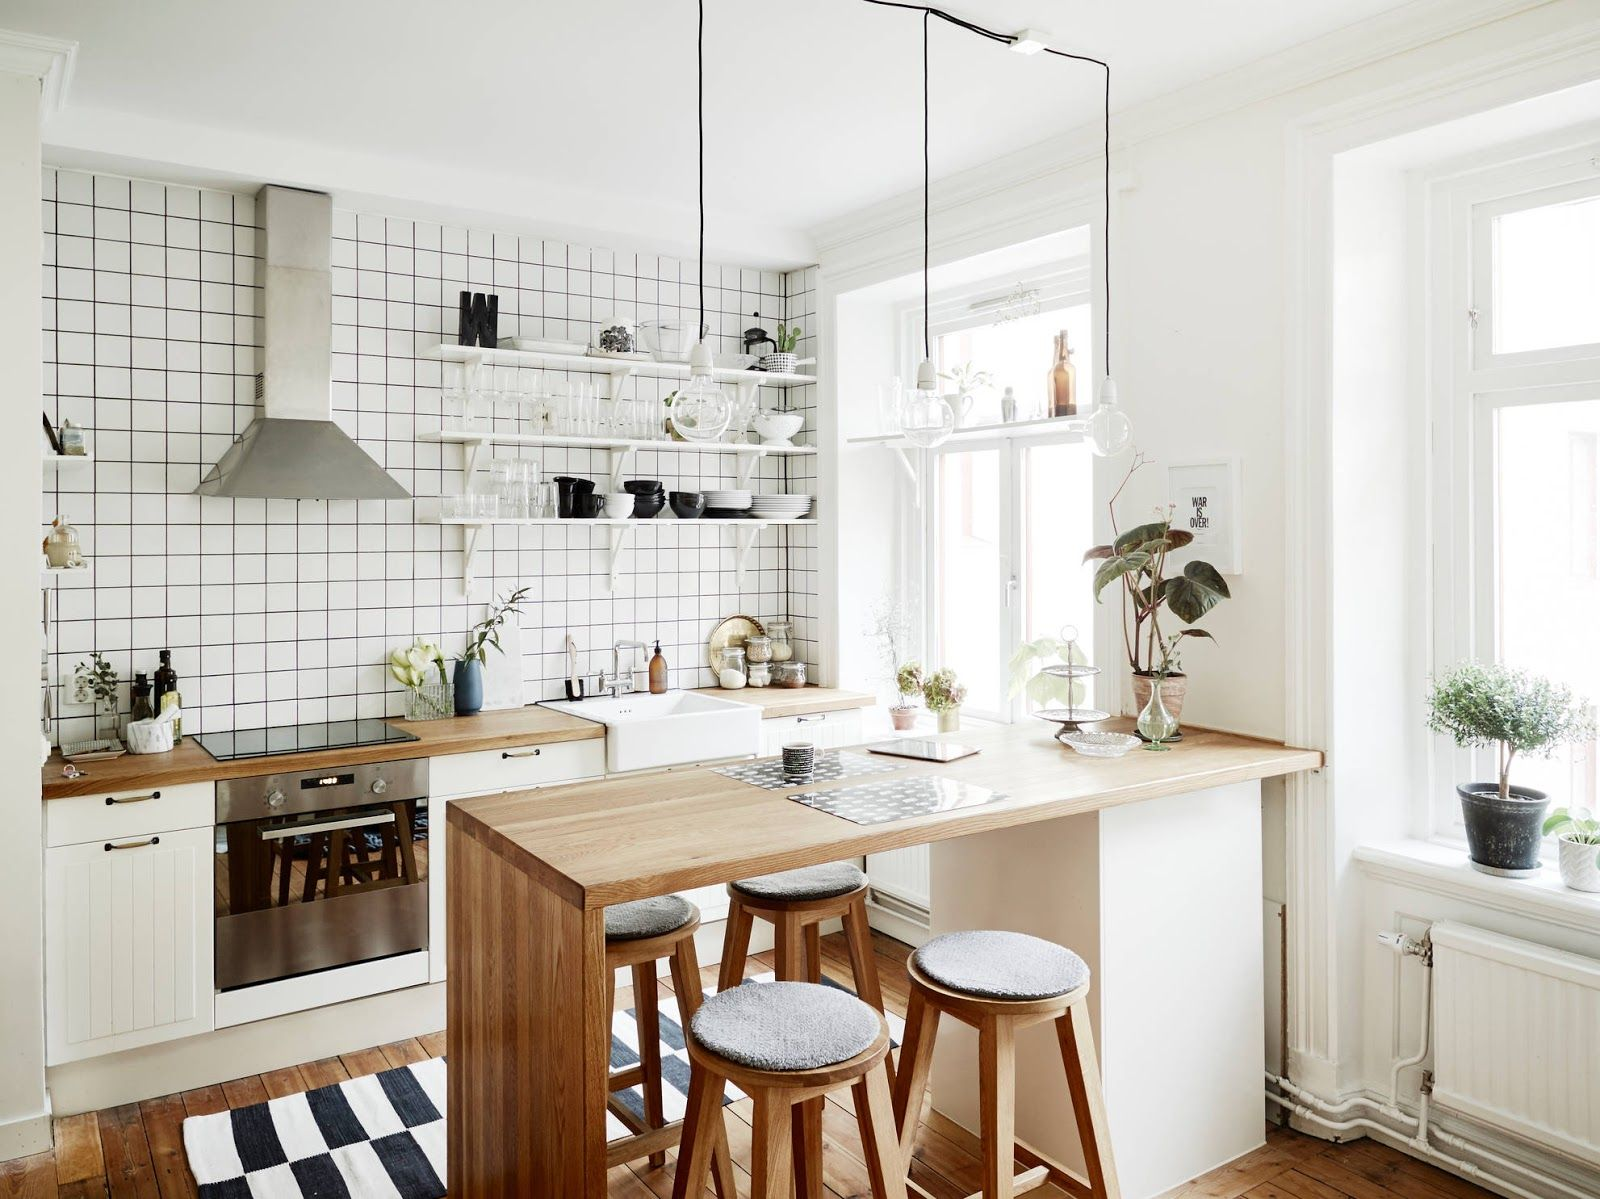 Best 25+ Small apartment kitchen ideas on Pinterest | Tiny ...